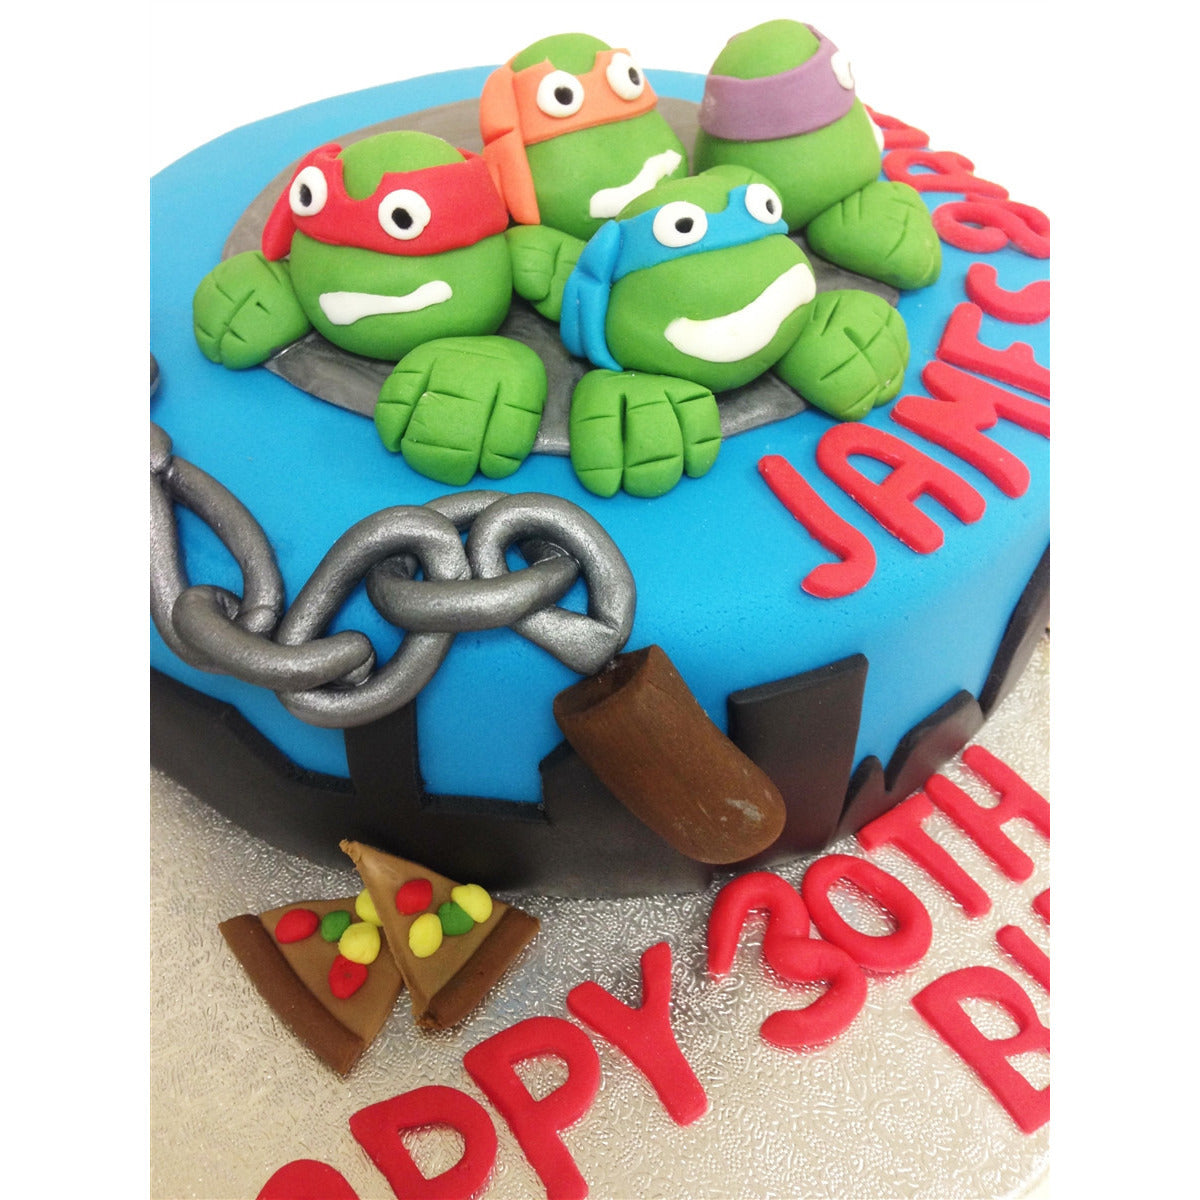 Surprising Teenage Mutant Ninja Turtles Cake Free Uk Delivery New Cakes Birthday Cards Printable Riciscafe Filternl